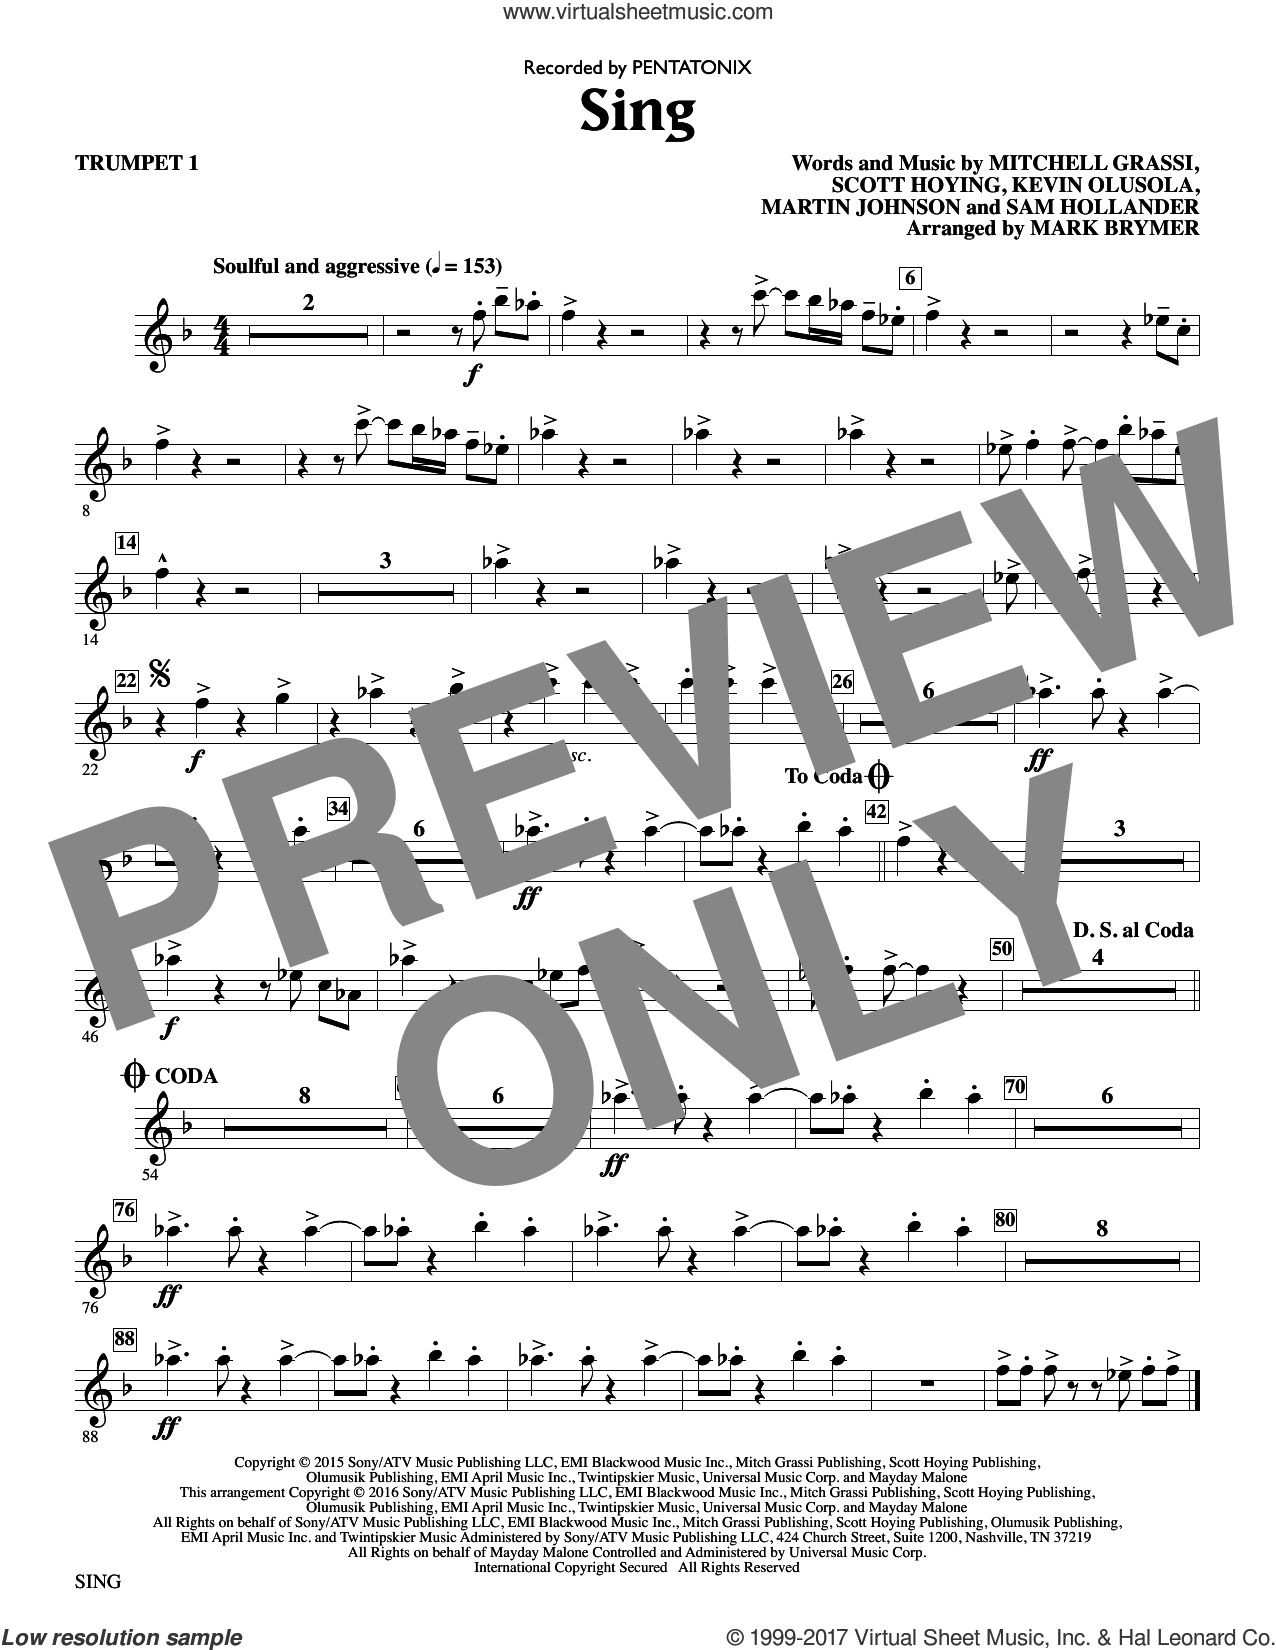 Sing (complete set of parts) sheet music for orchestra/band by Mark Brymer, Kevin Olusola, Martin Johnson, Mitchell Grassi, Pentatonix, Sam Hollander and Scott Hoying, intermediate skill level